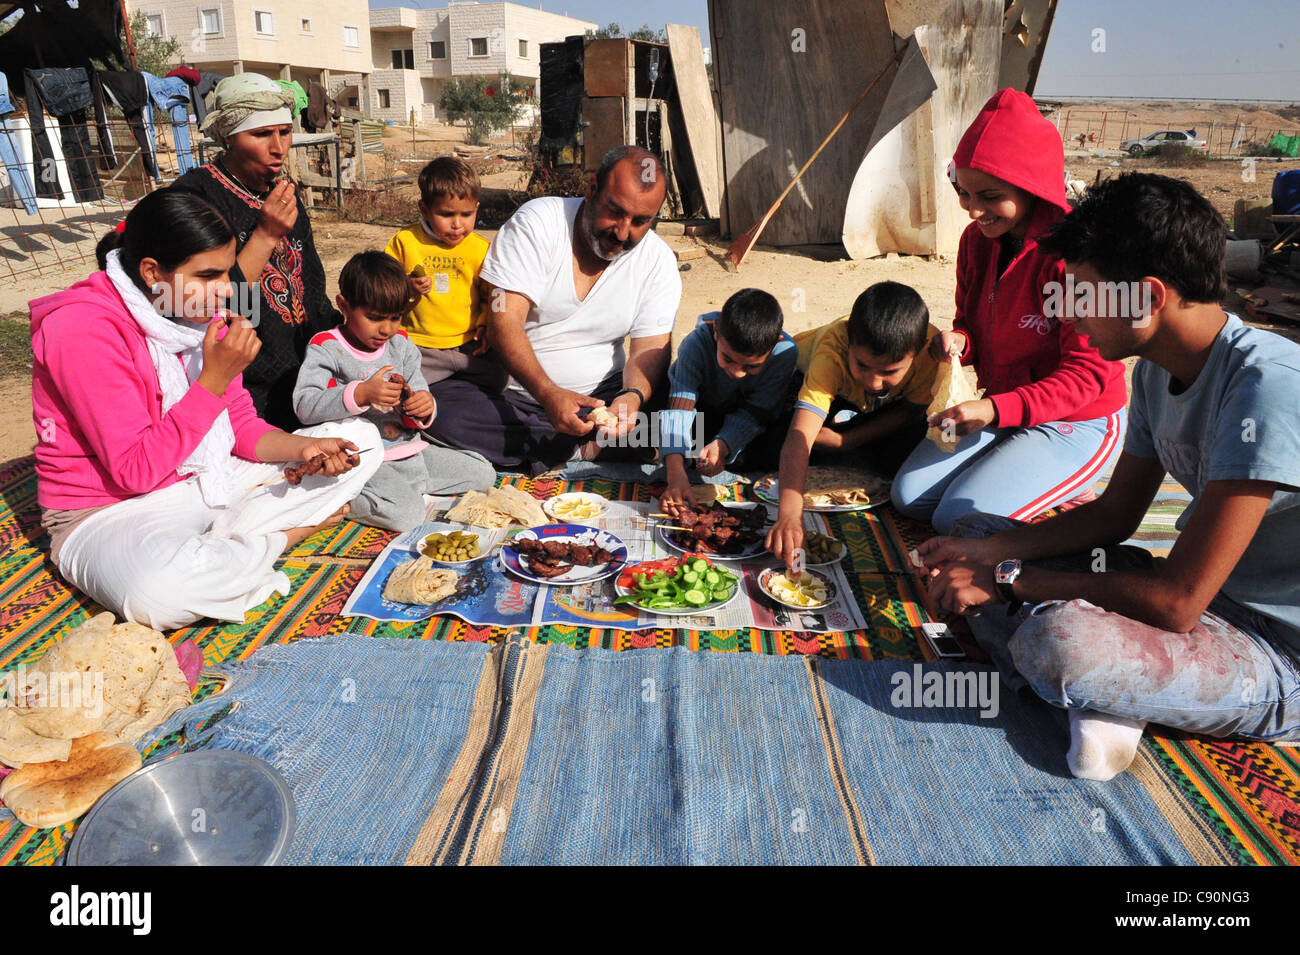 Bedouins from South Israel Celebrate Eid al-Adha - Stock Image